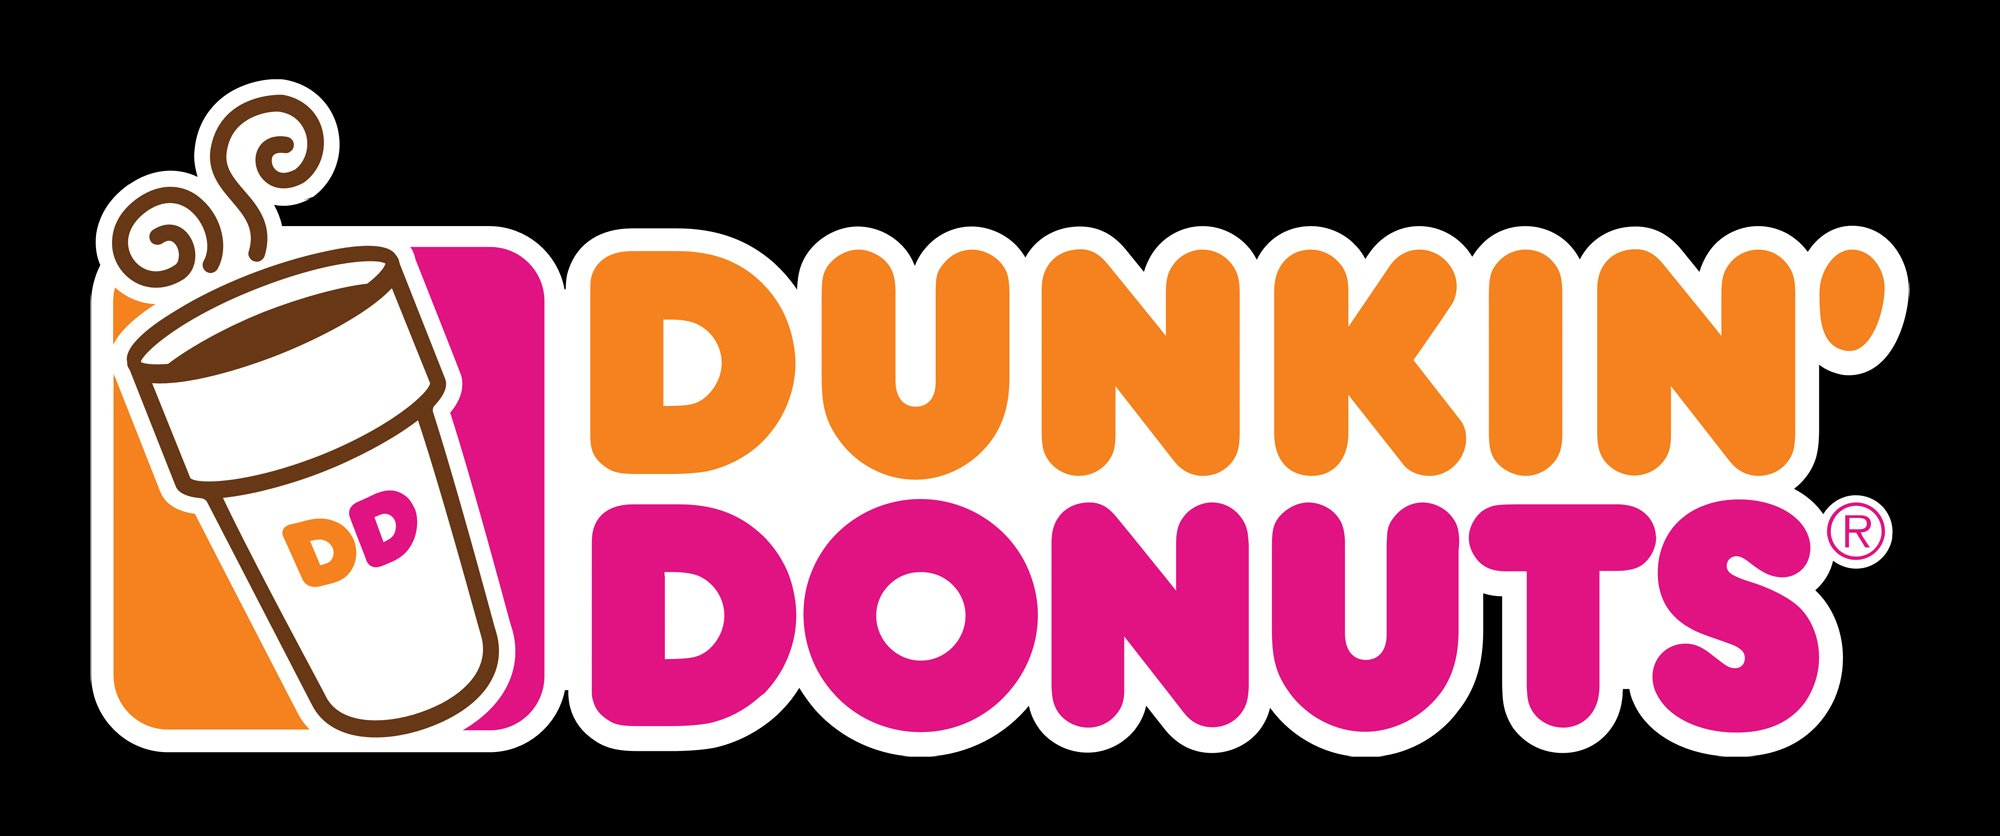 dunkin donuts logo  dunkin donuts symbol  meaning  history and evolution